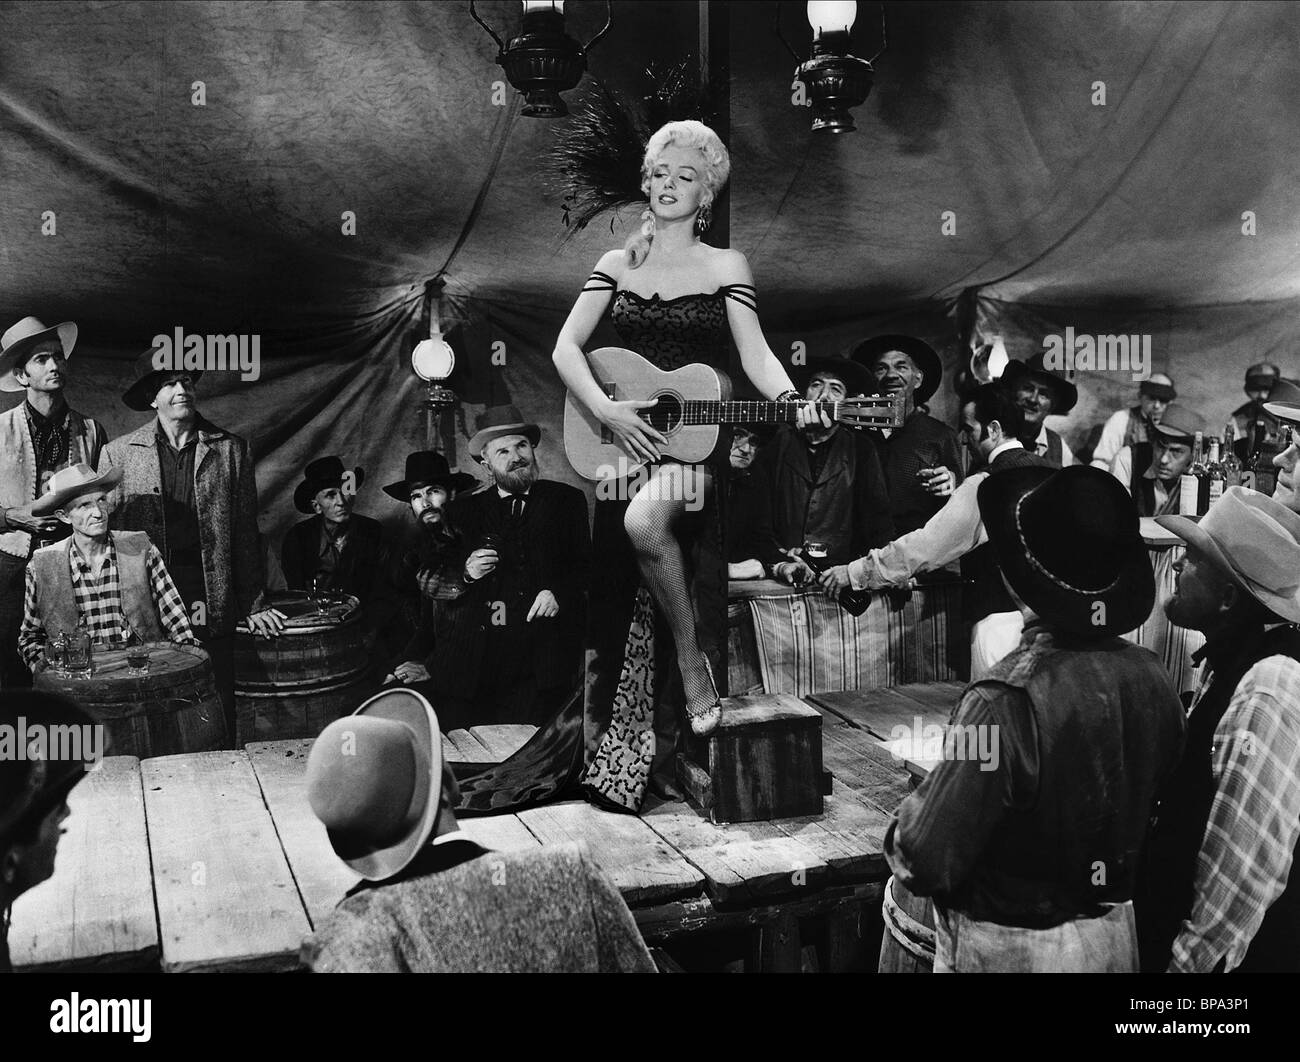 marilyn monroe river of no return 1954 stock photo 30955289 alamy